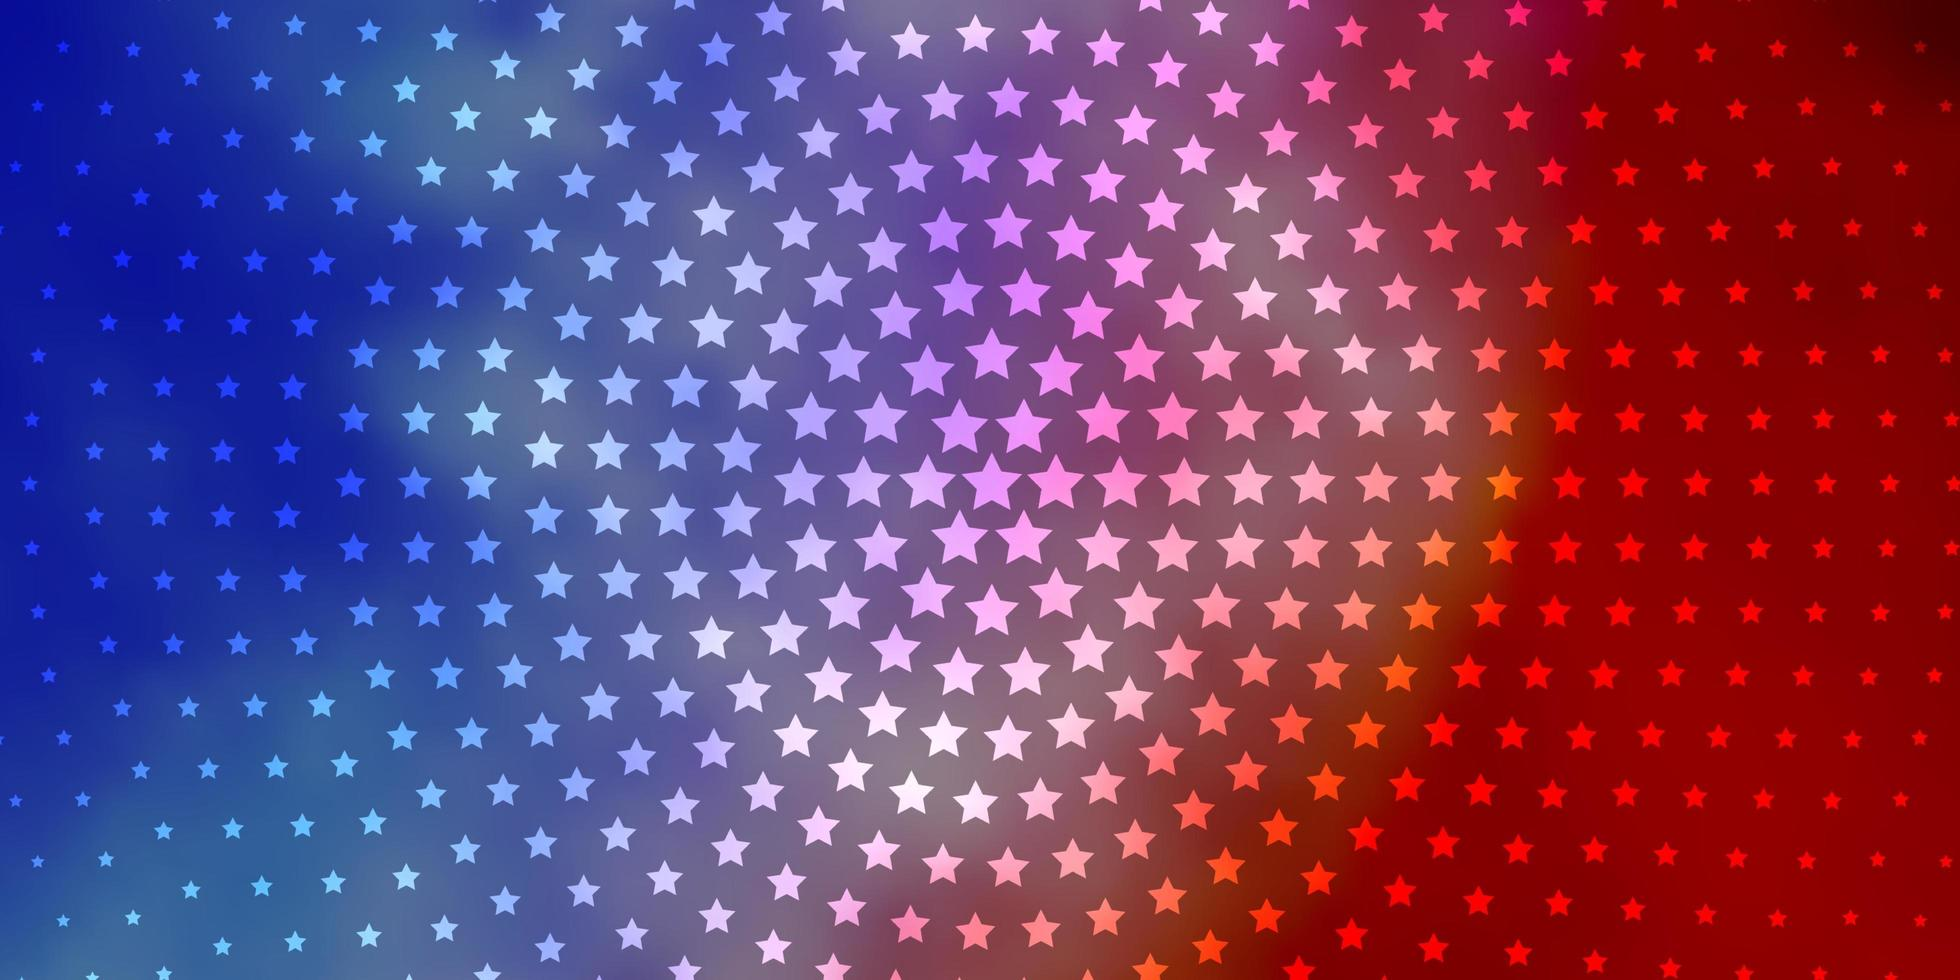 Light Blue, Red layout with bright stars. vector